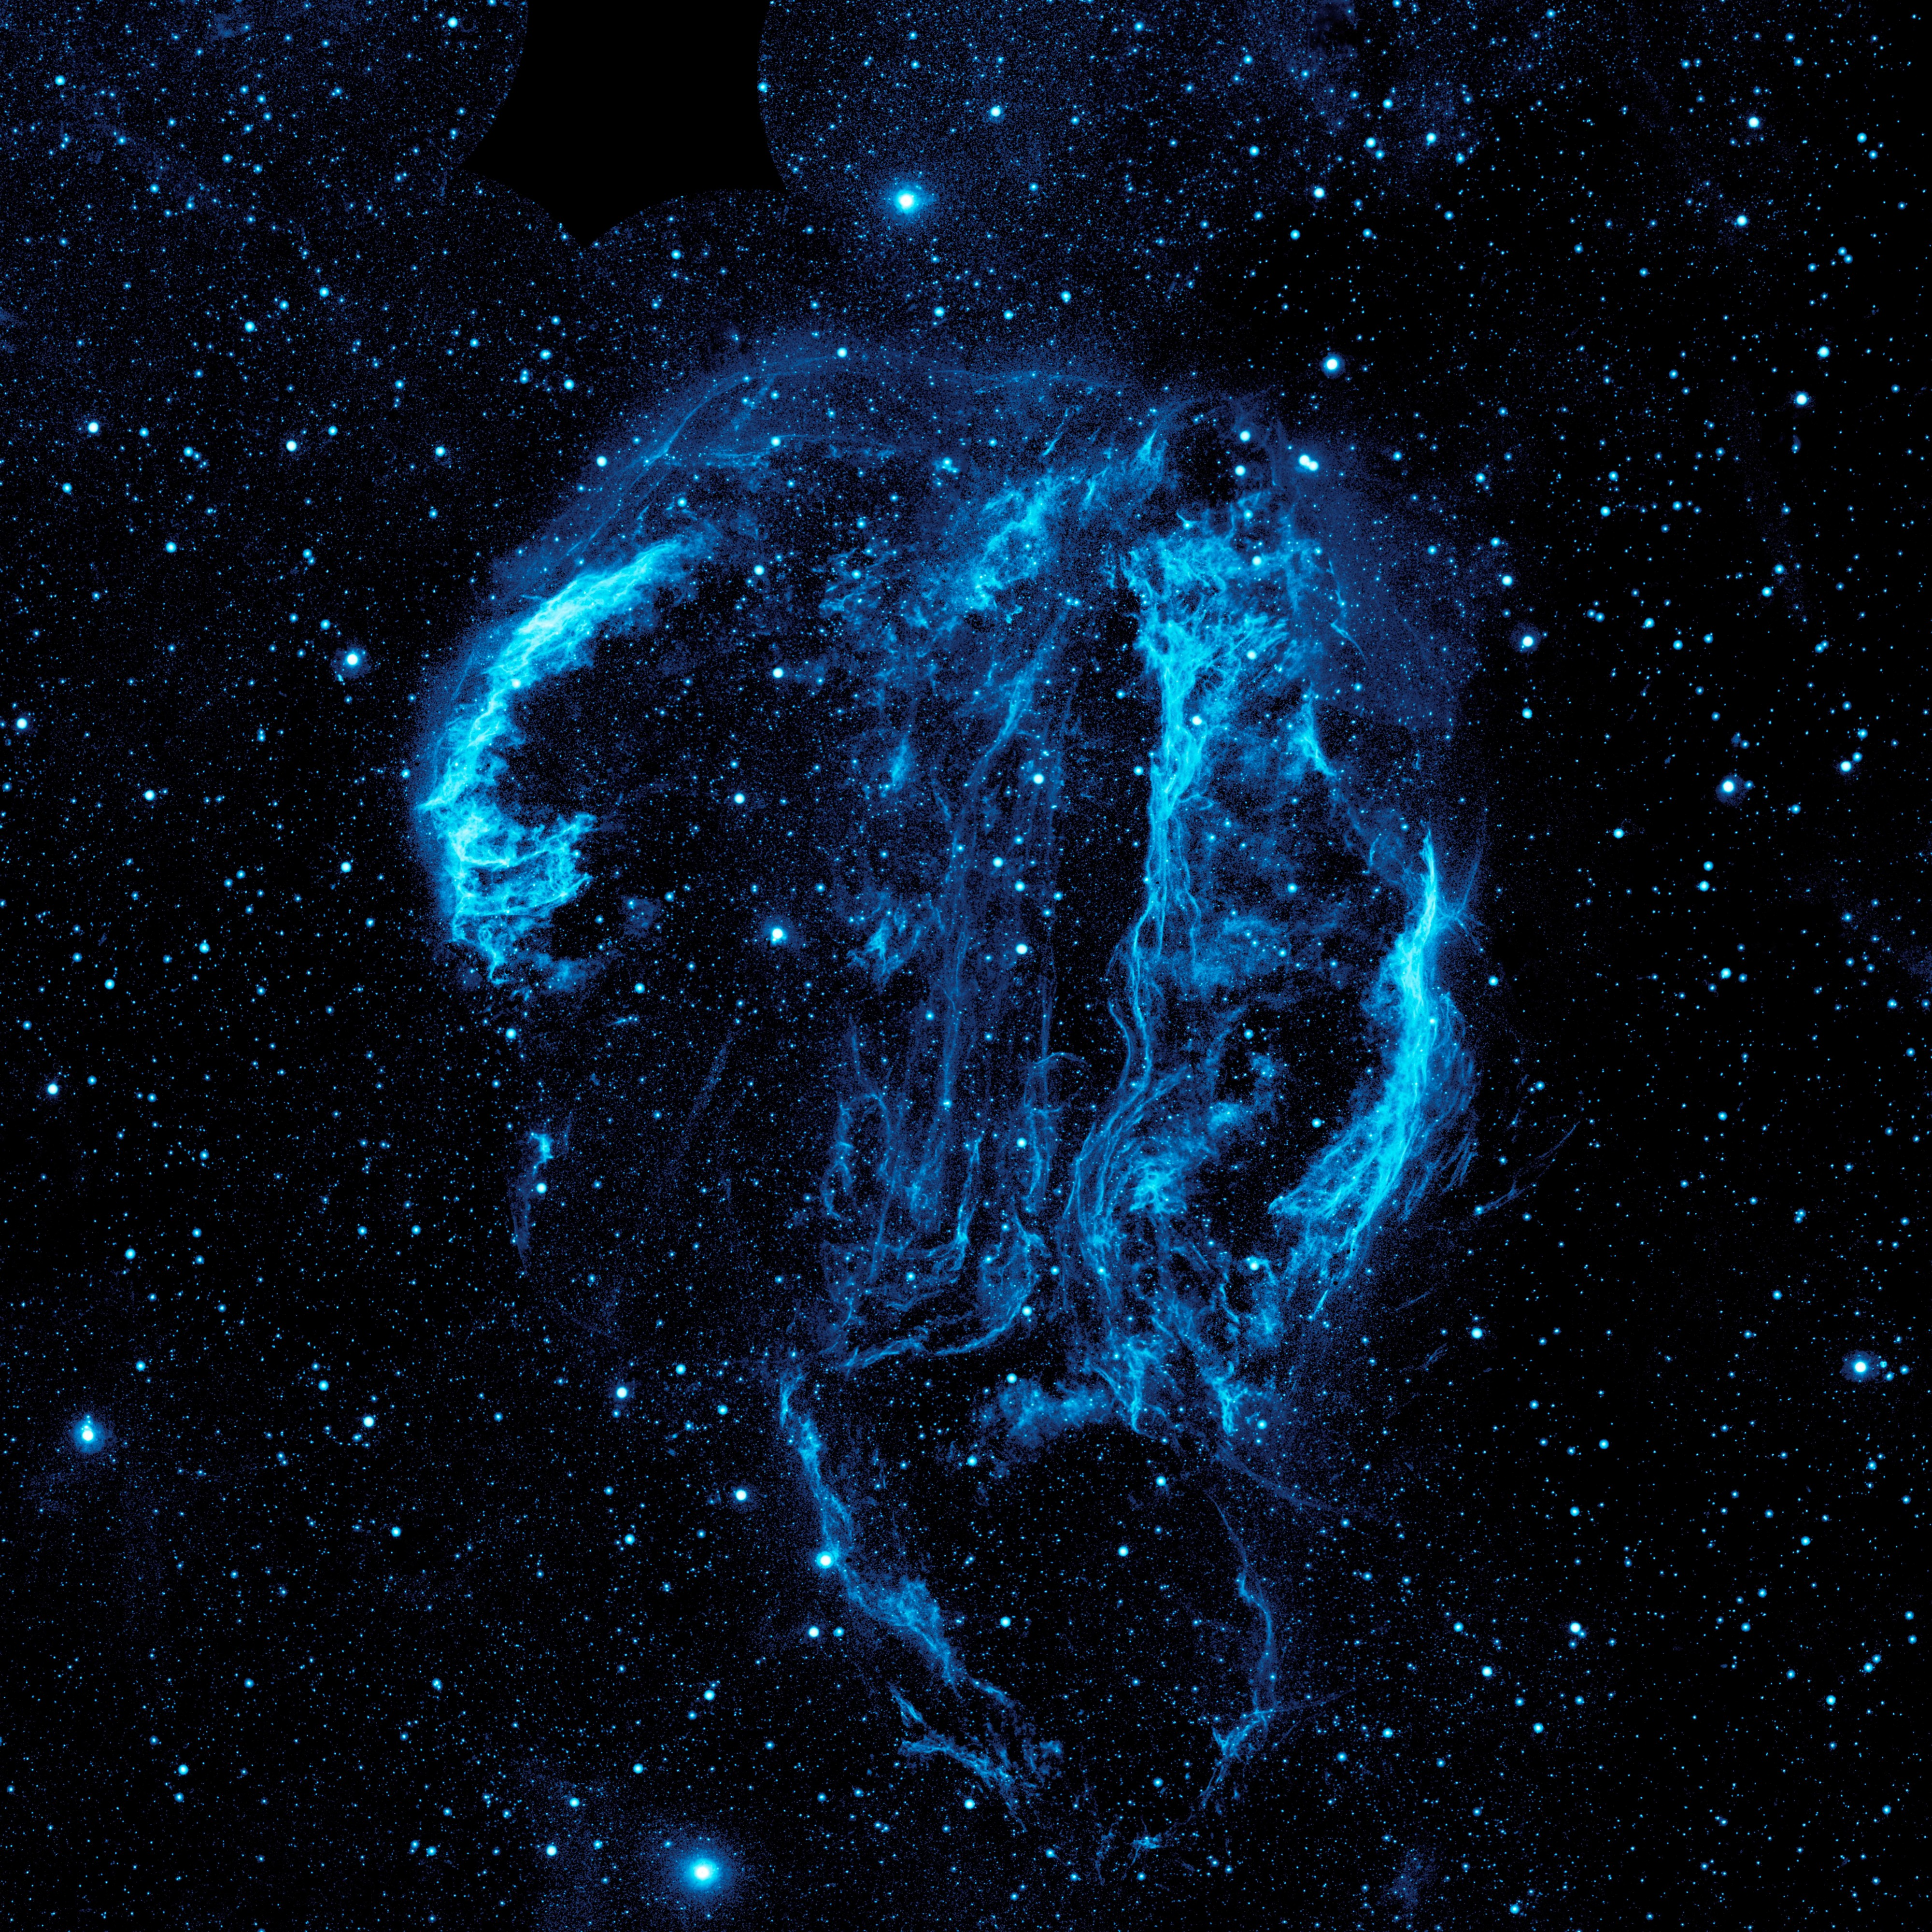 Ultraviolet image of the Cygnus Loop Nebula